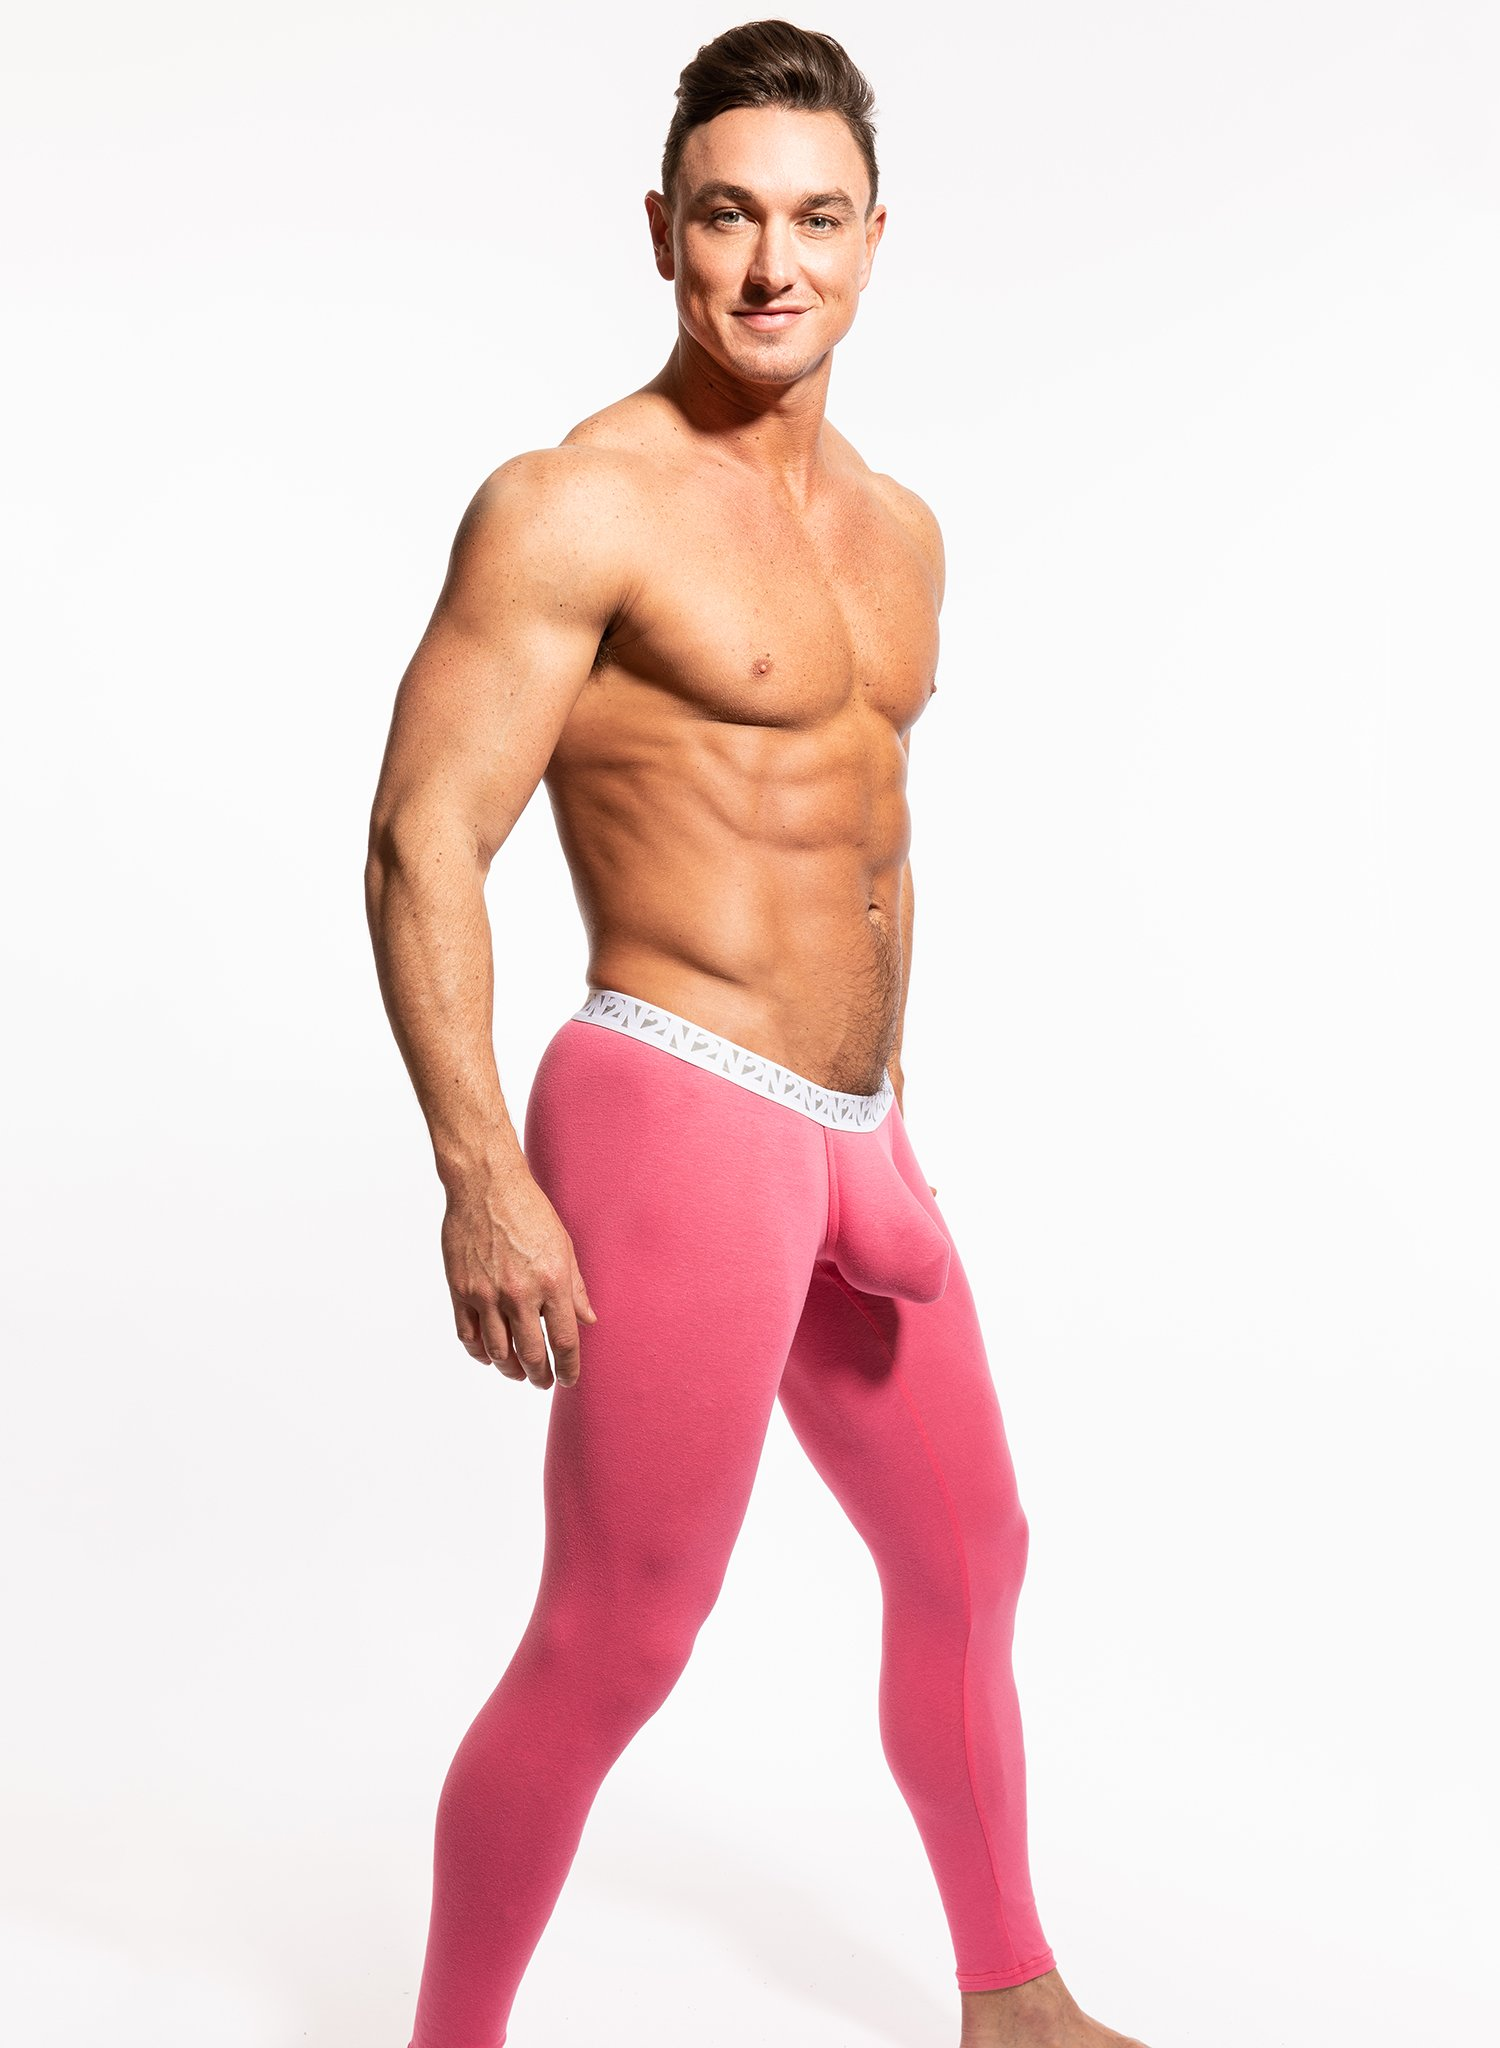 N2N Bodywear Stay warm in Pink Miami Tights